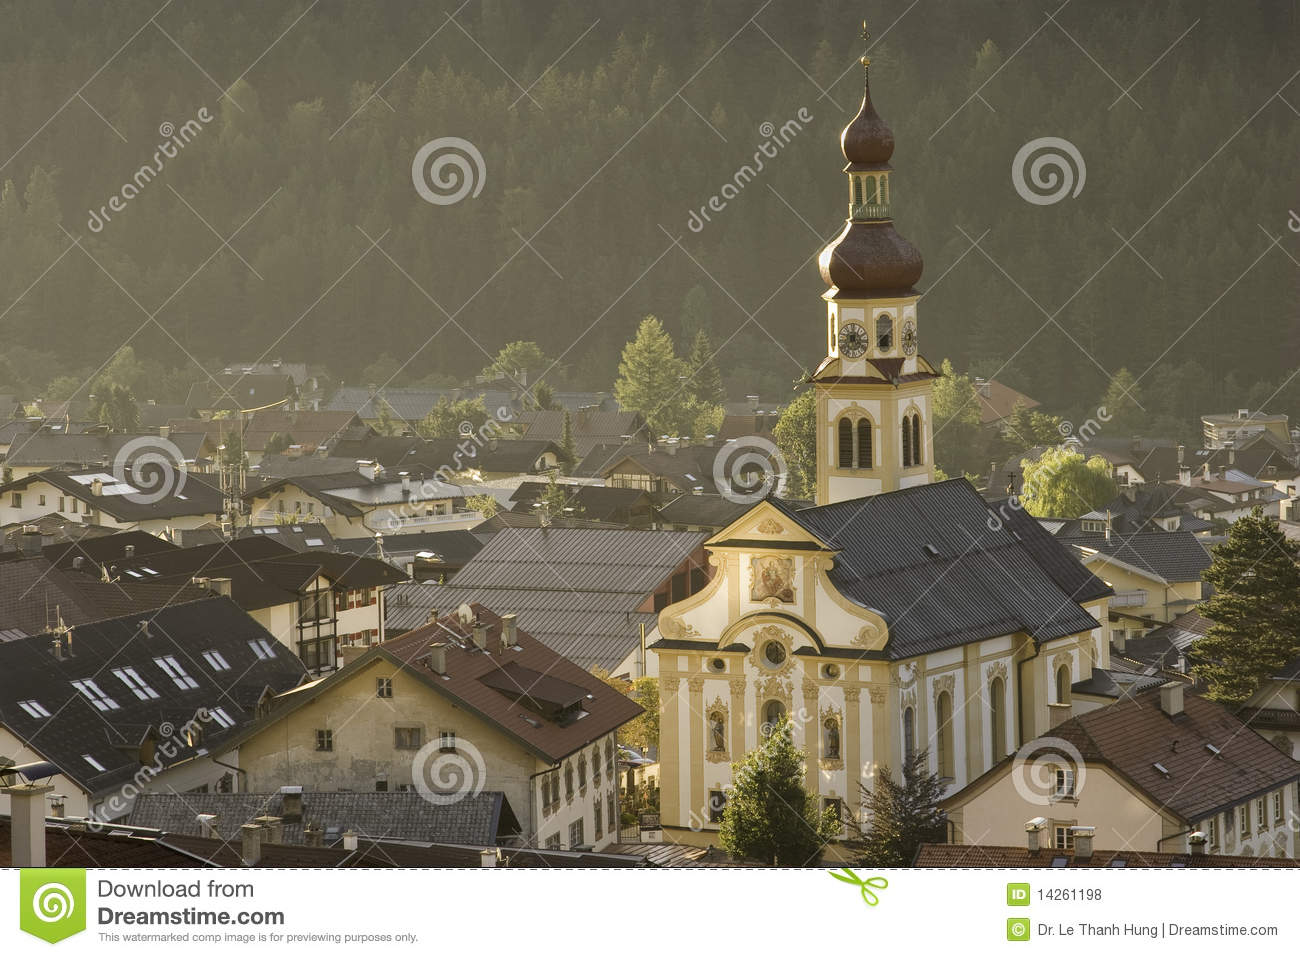 Fulpmes Austria  City pictures : Nice View Of Fulpmes, Austria Royalty Free Stock Photos Image ...